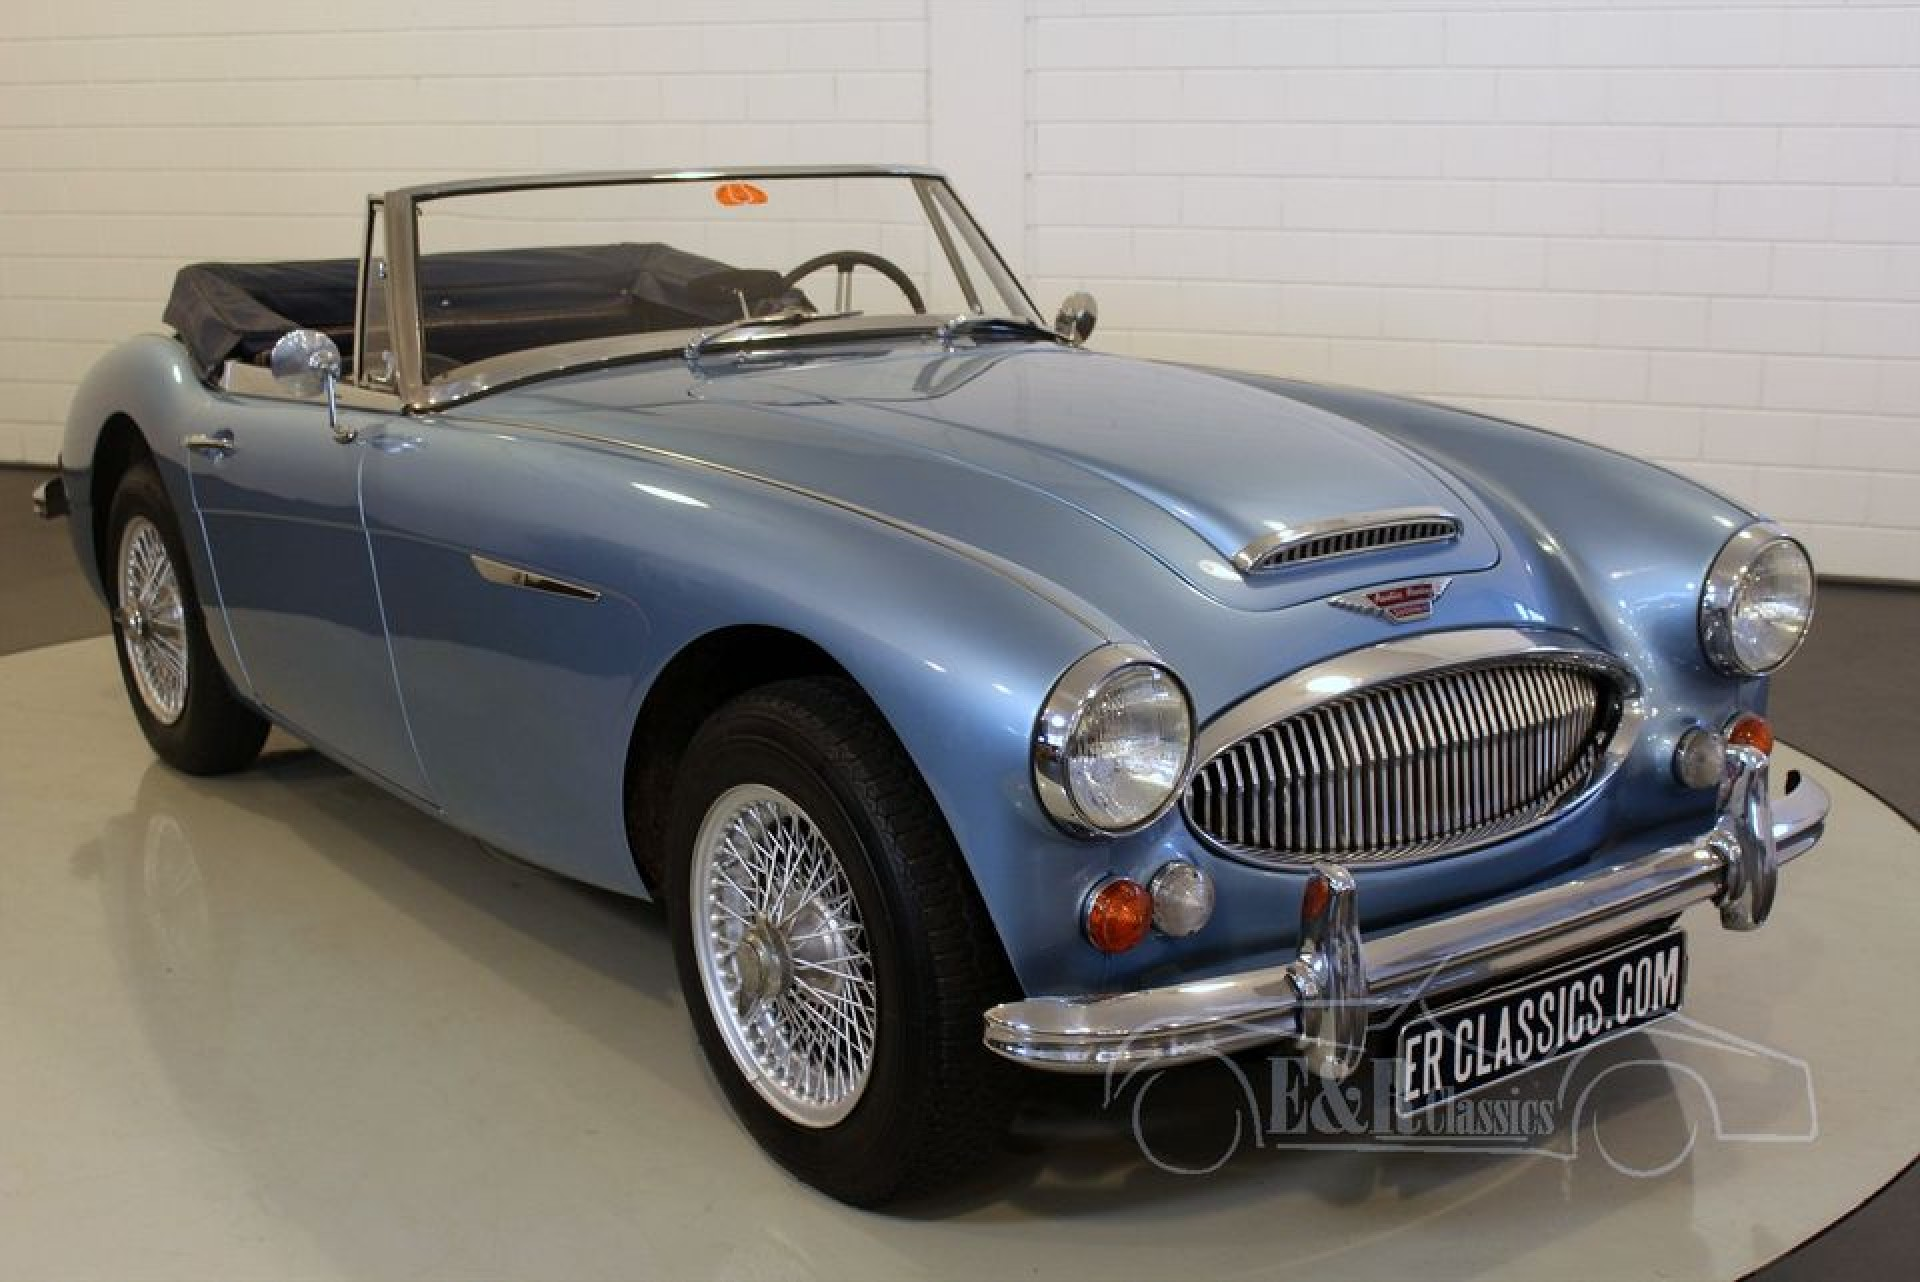 austin healey 3000 mk3 1966 vendre erclassics. Black Bedroom Furniture Sets. Home Design Ideas